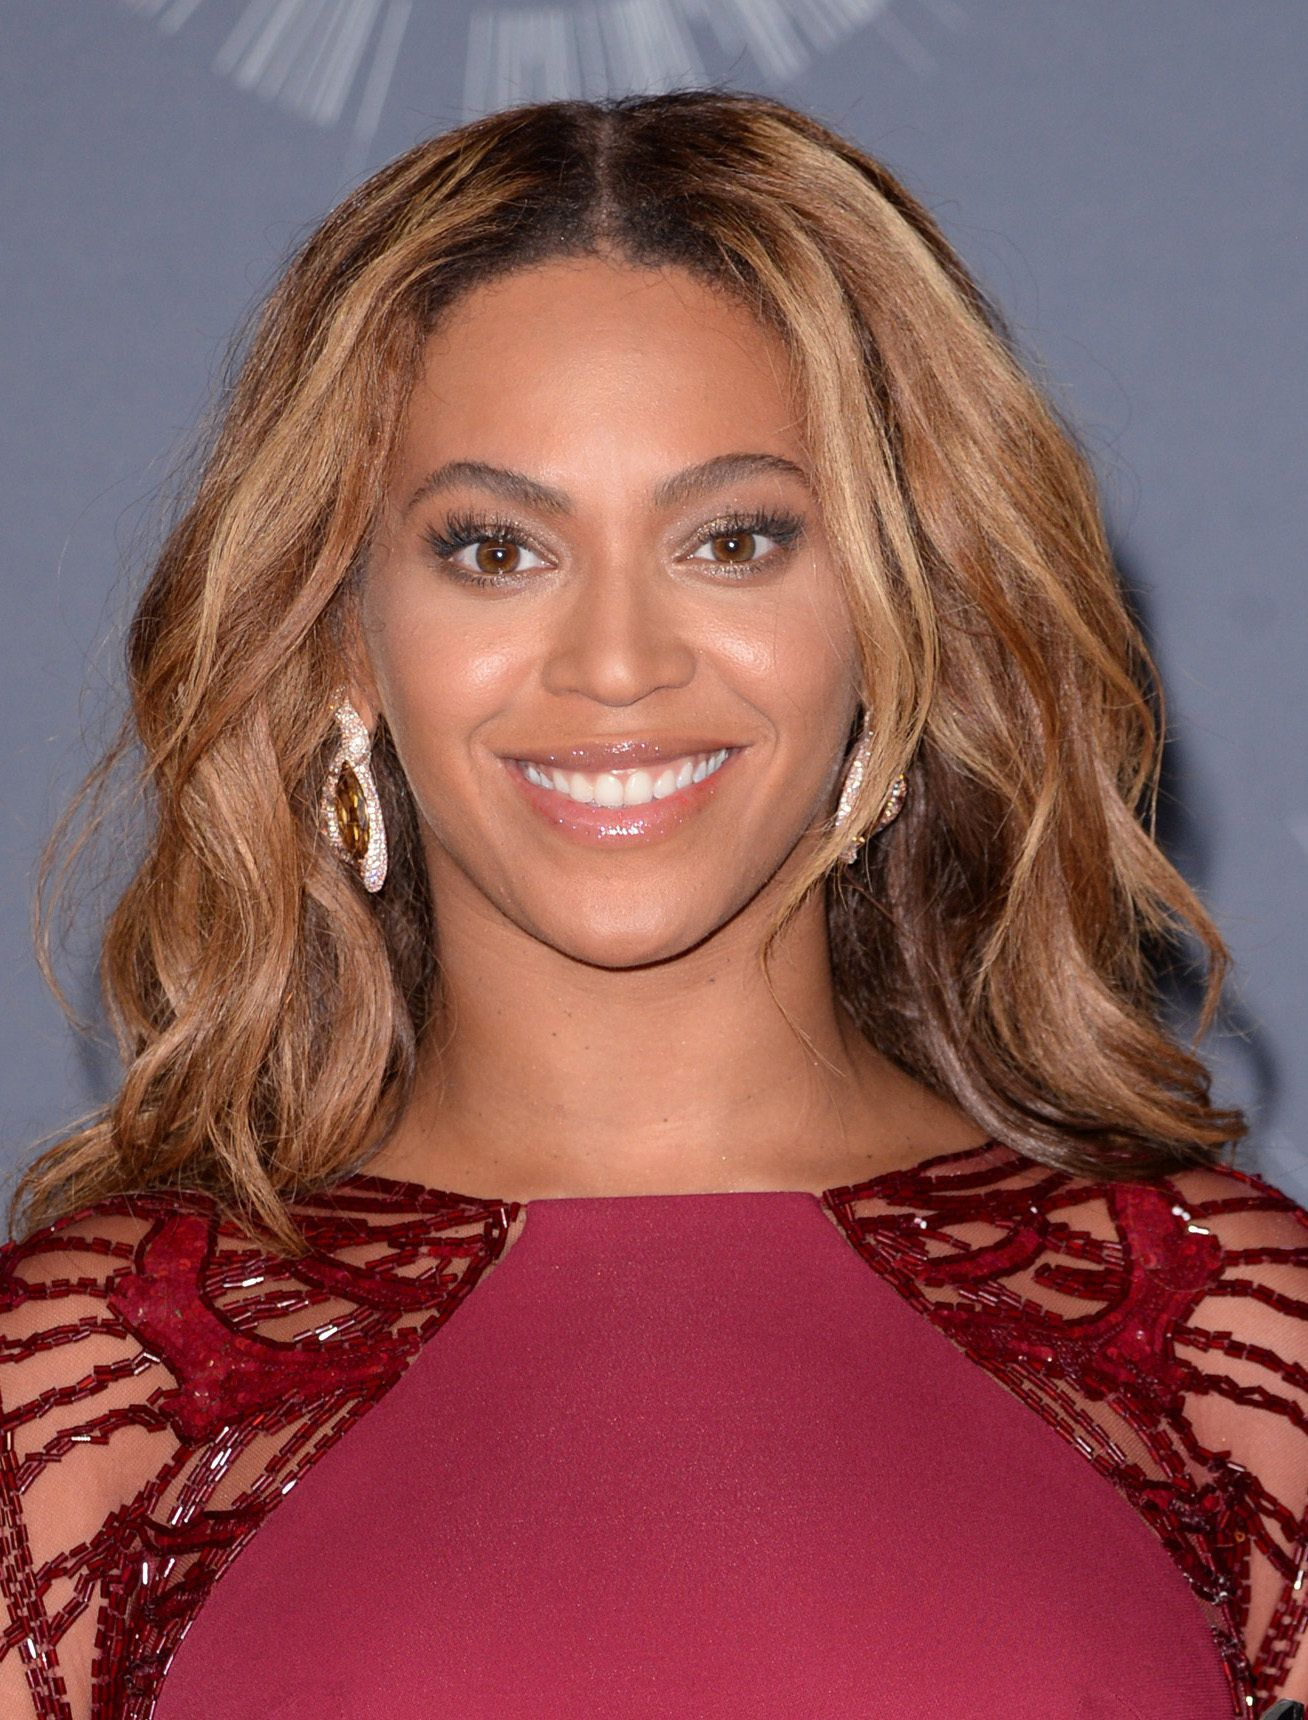 File photo dated 24/8/2014 of Beyonce Knowles, who has shared a series of pictures from her second headlining slot at Coachella.